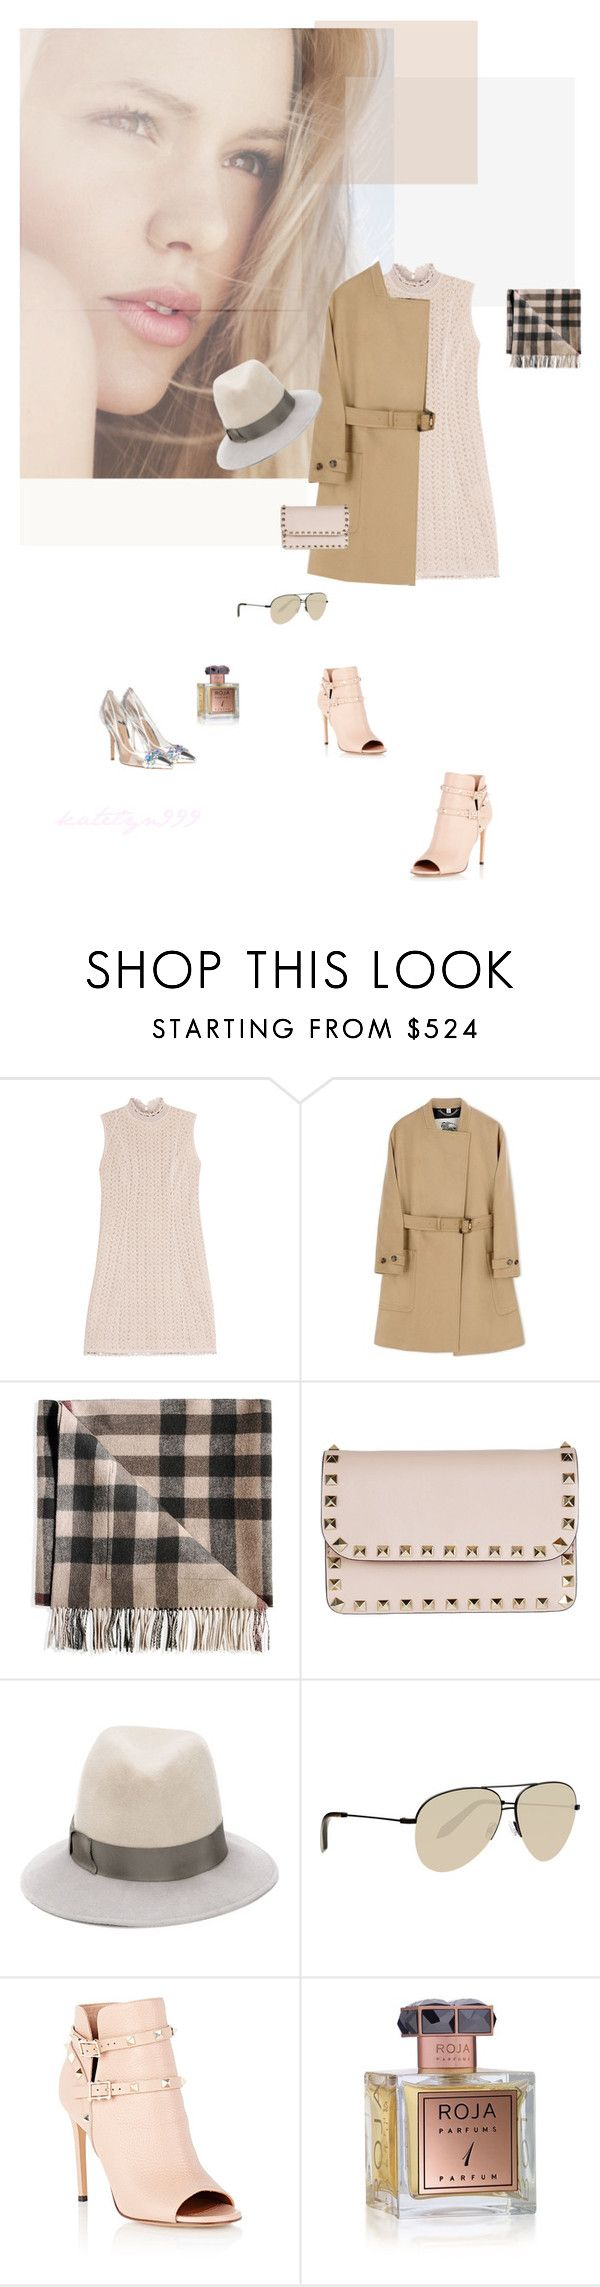 """""""Love is the answer to everything..."""" by katelyn999 ❤ liked on Polyvore featuring Missoni, Burberry, Valentino, House of Lafayette, Victoria Beckham, Roja Parfums, chic, personalstyle and fall2015"""